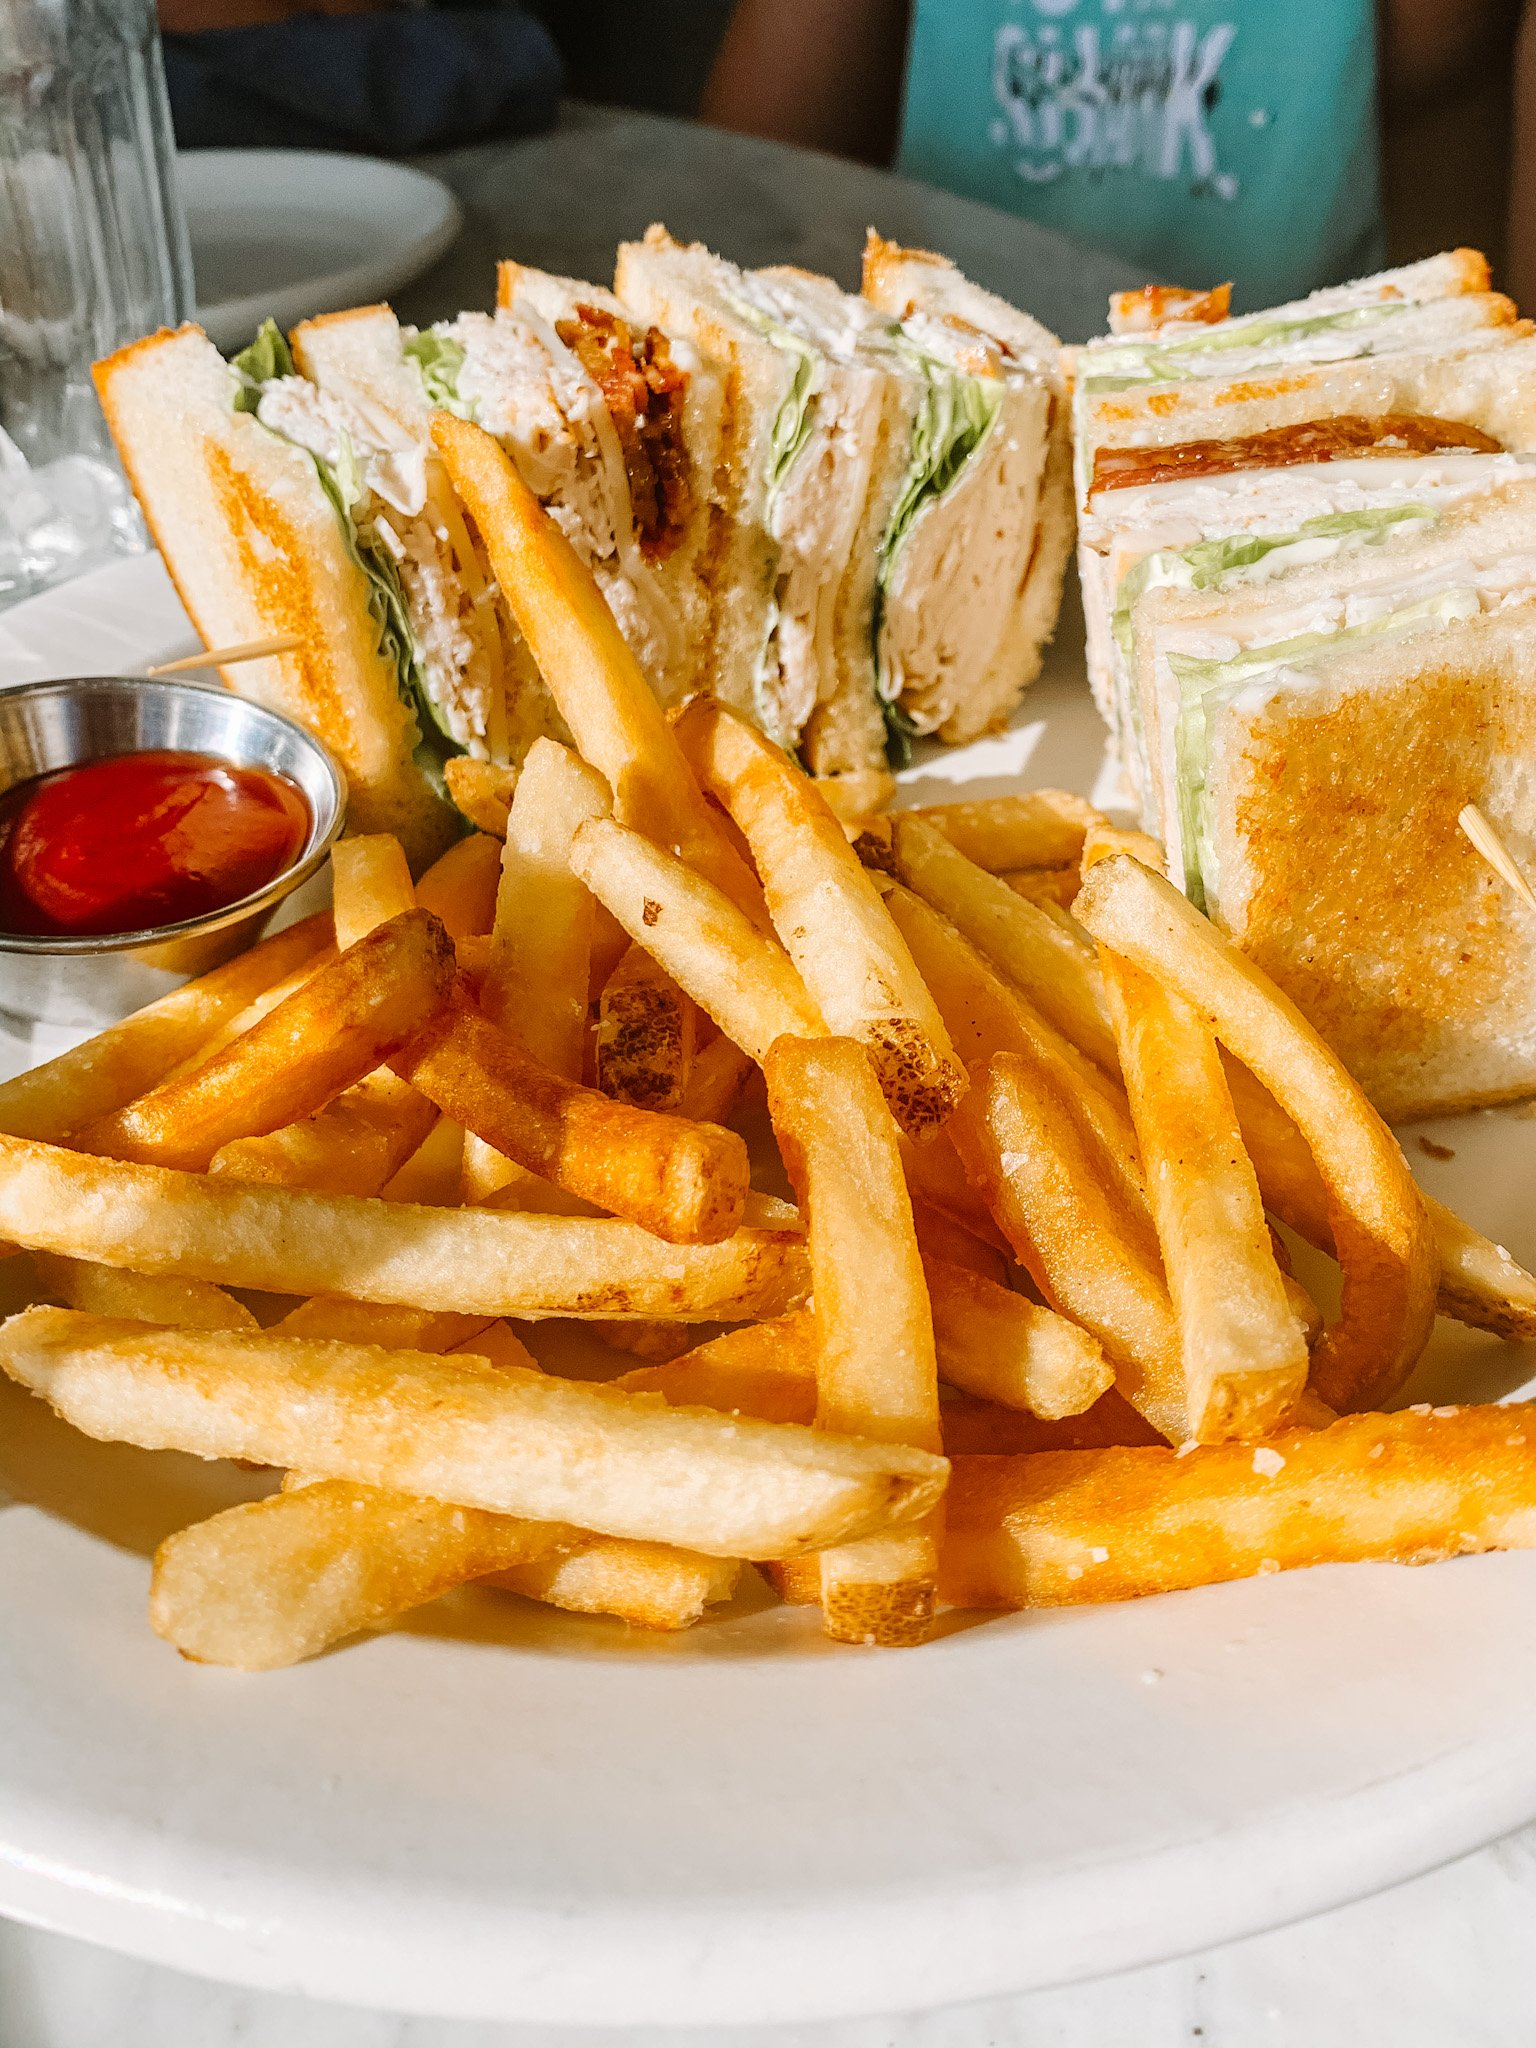 The Henry Coronado - Club Sandwich